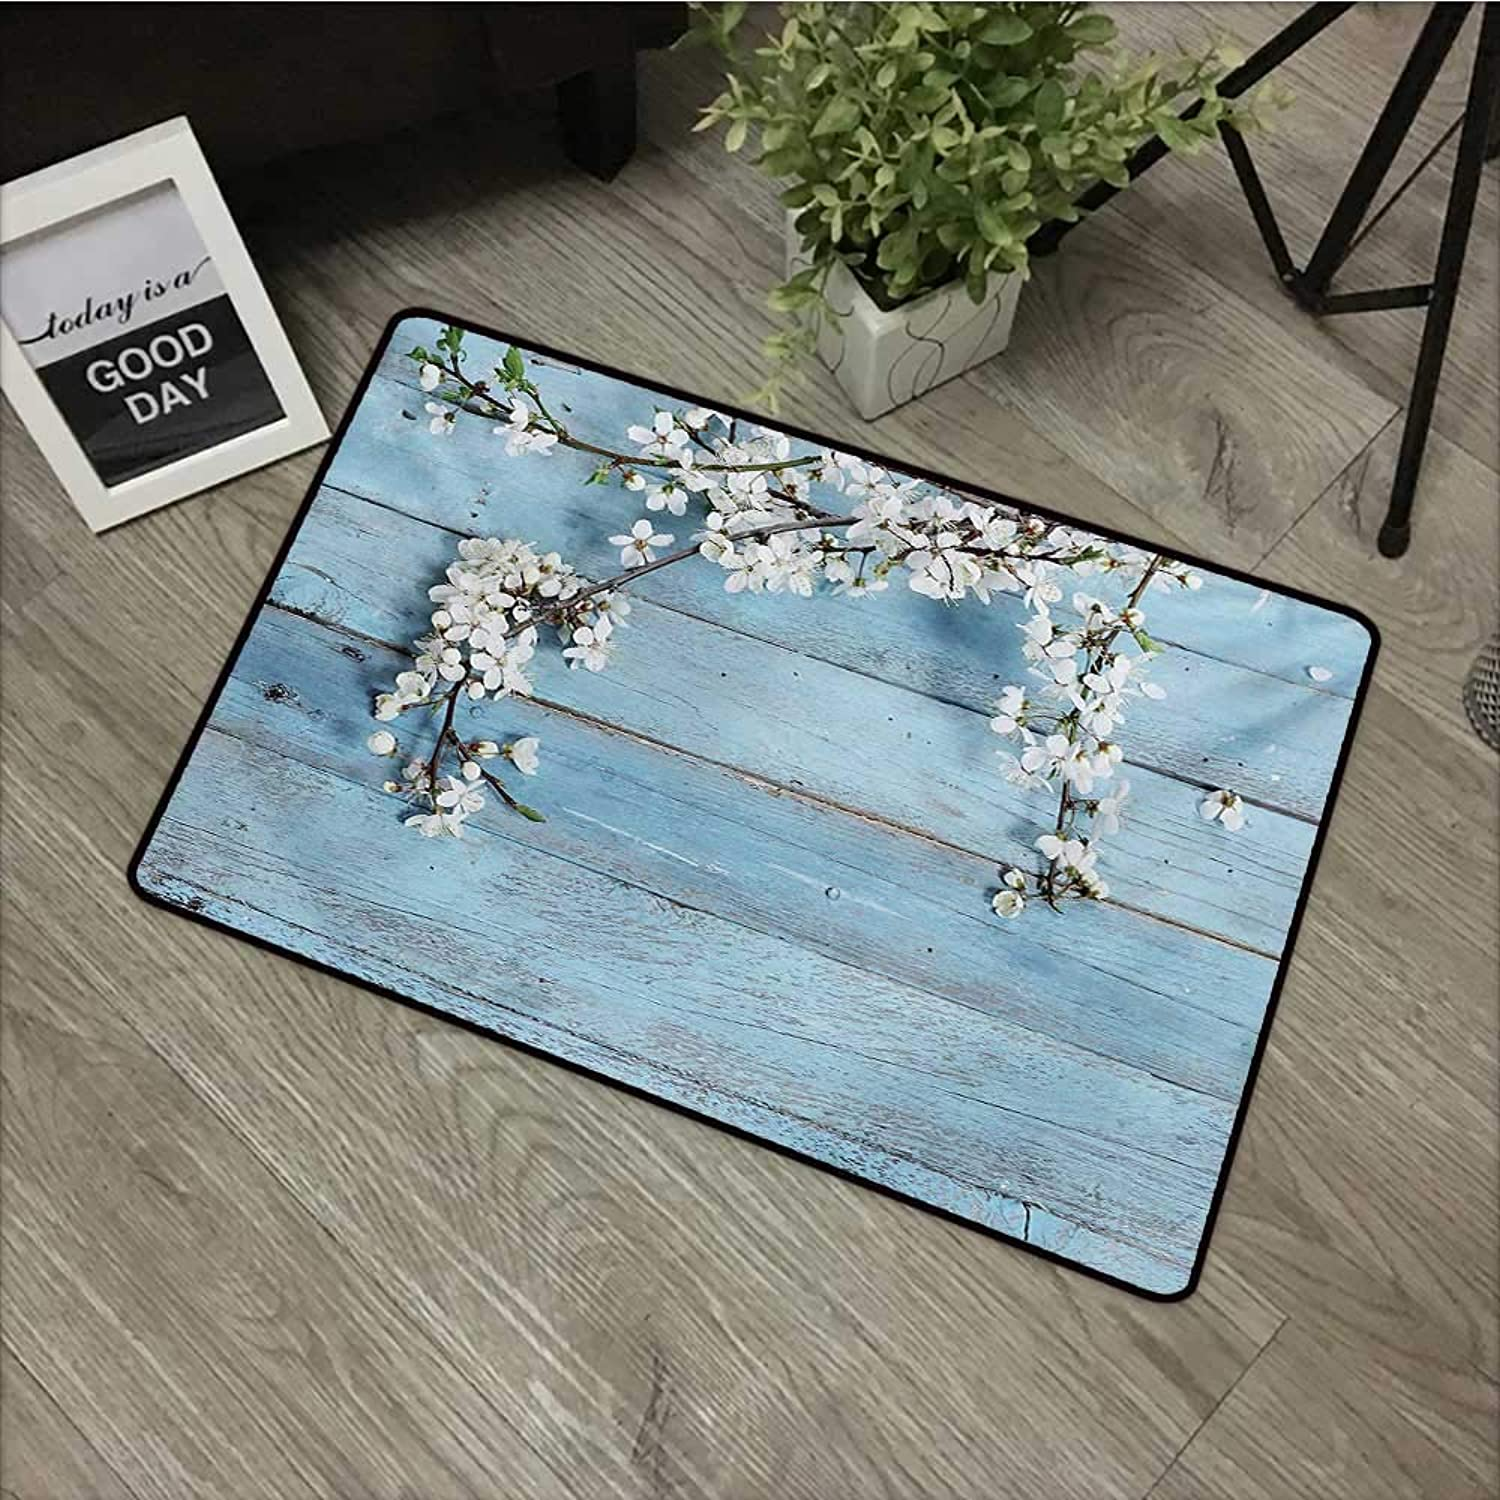 Bathroom Door mat W35 x L59 INCH Rustic,A Branch with Blooming Spring Flowers on Wooden Fragility Symbol of Spring,White Pale bluee Non-Slip, with Non-Slip Backing,Non-Slip Door Mat Carpet